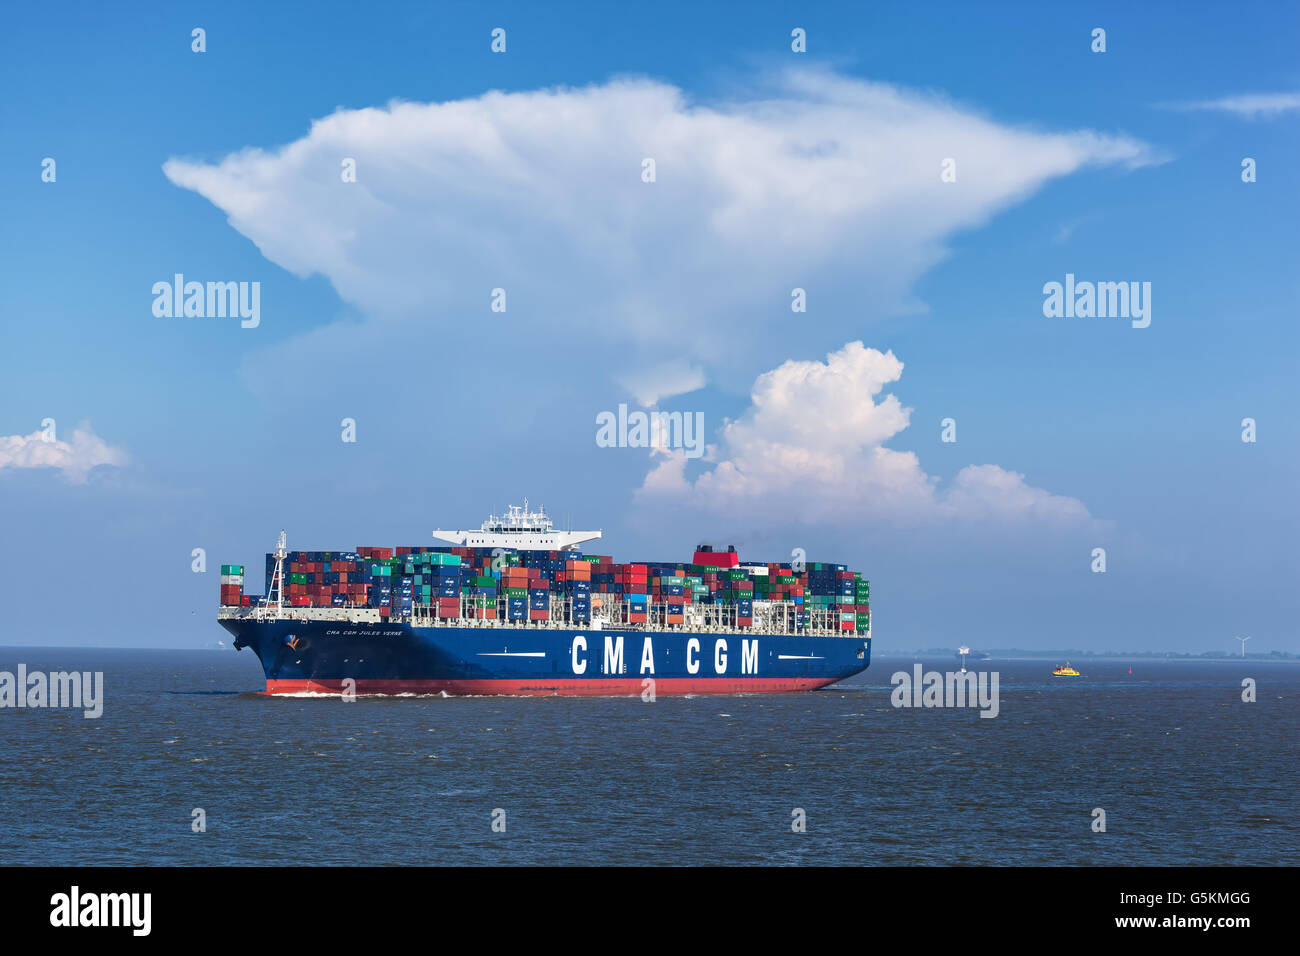 CMA CGM Jules Verne passing Cuxhaven after leaving Hamburg. - Stock Image